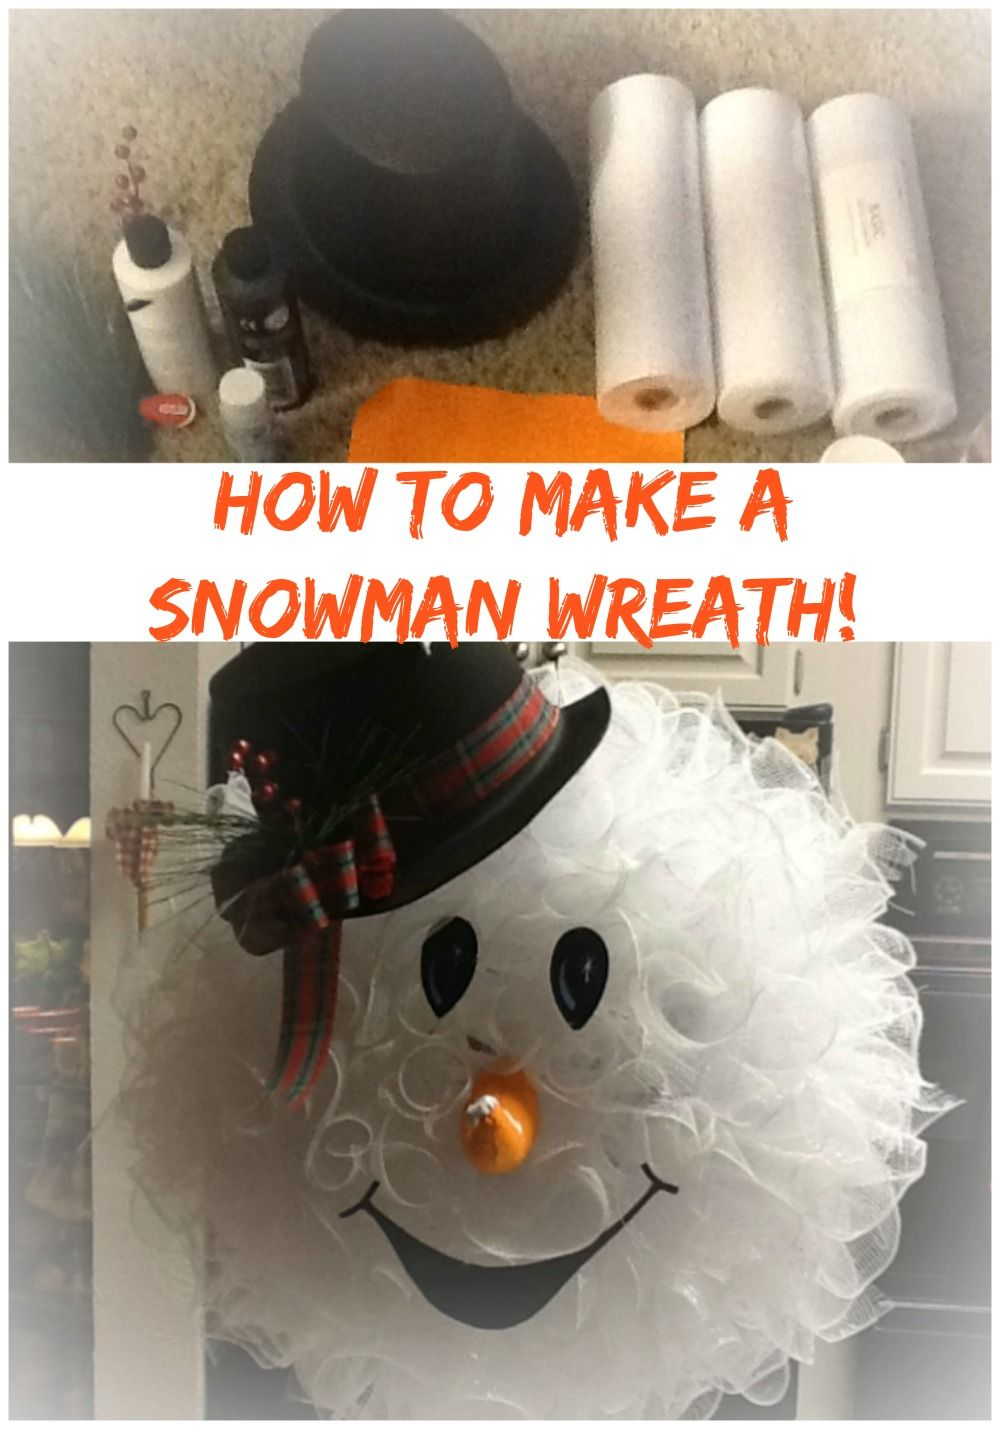 SNOWMAN WREATH Not the best instructions but